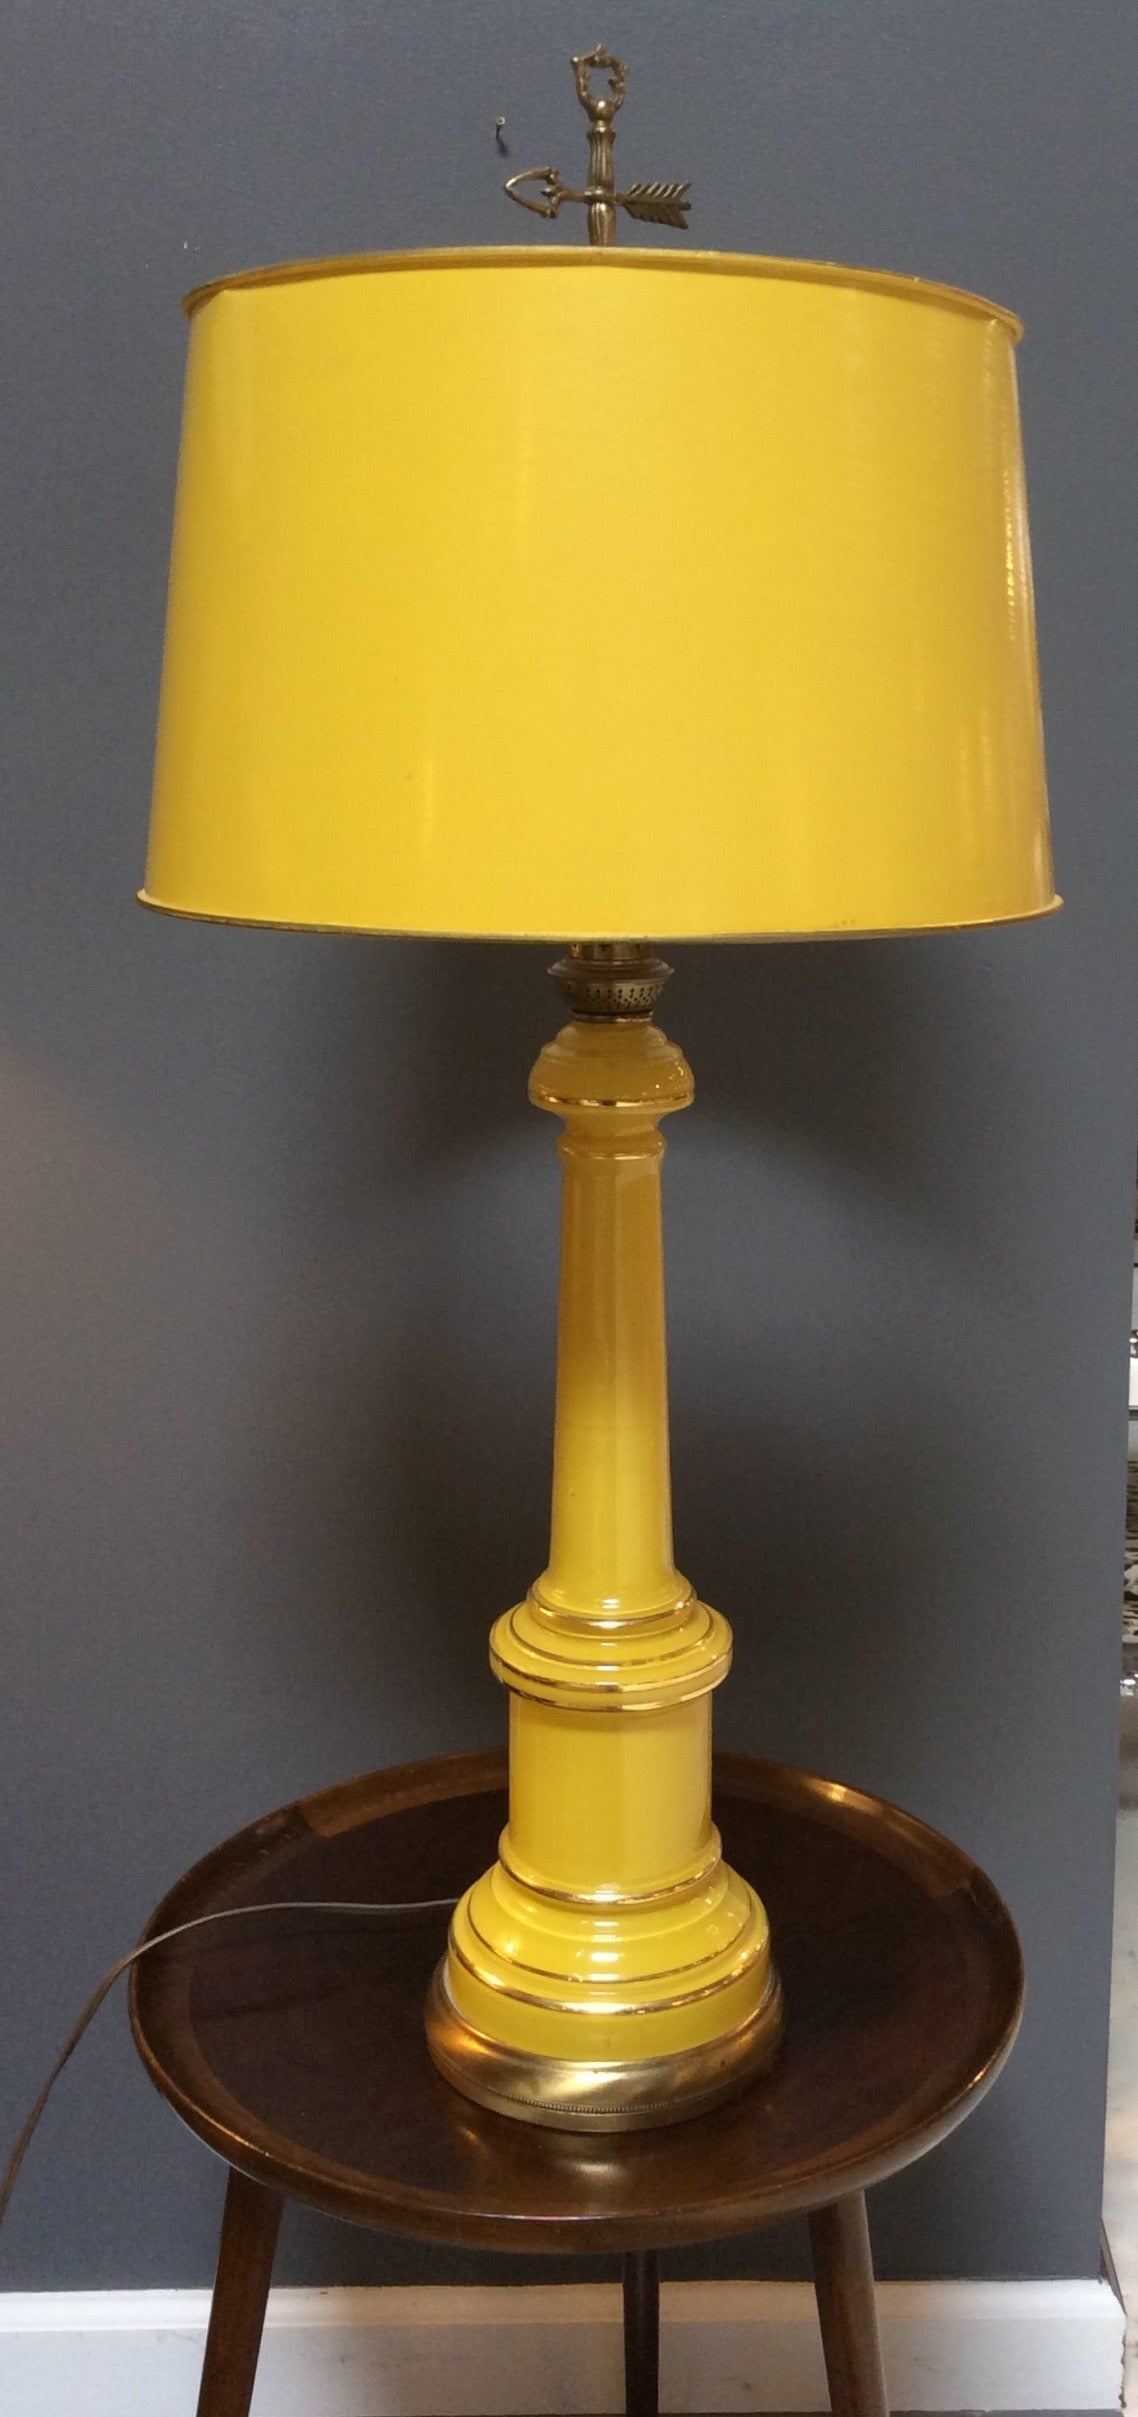 Mid century pair of yellow opaline table lamps by warren kessler empire mid century pair of yellow opaline table lamps by warren kessler nyc for sale aloadofball Choice Image